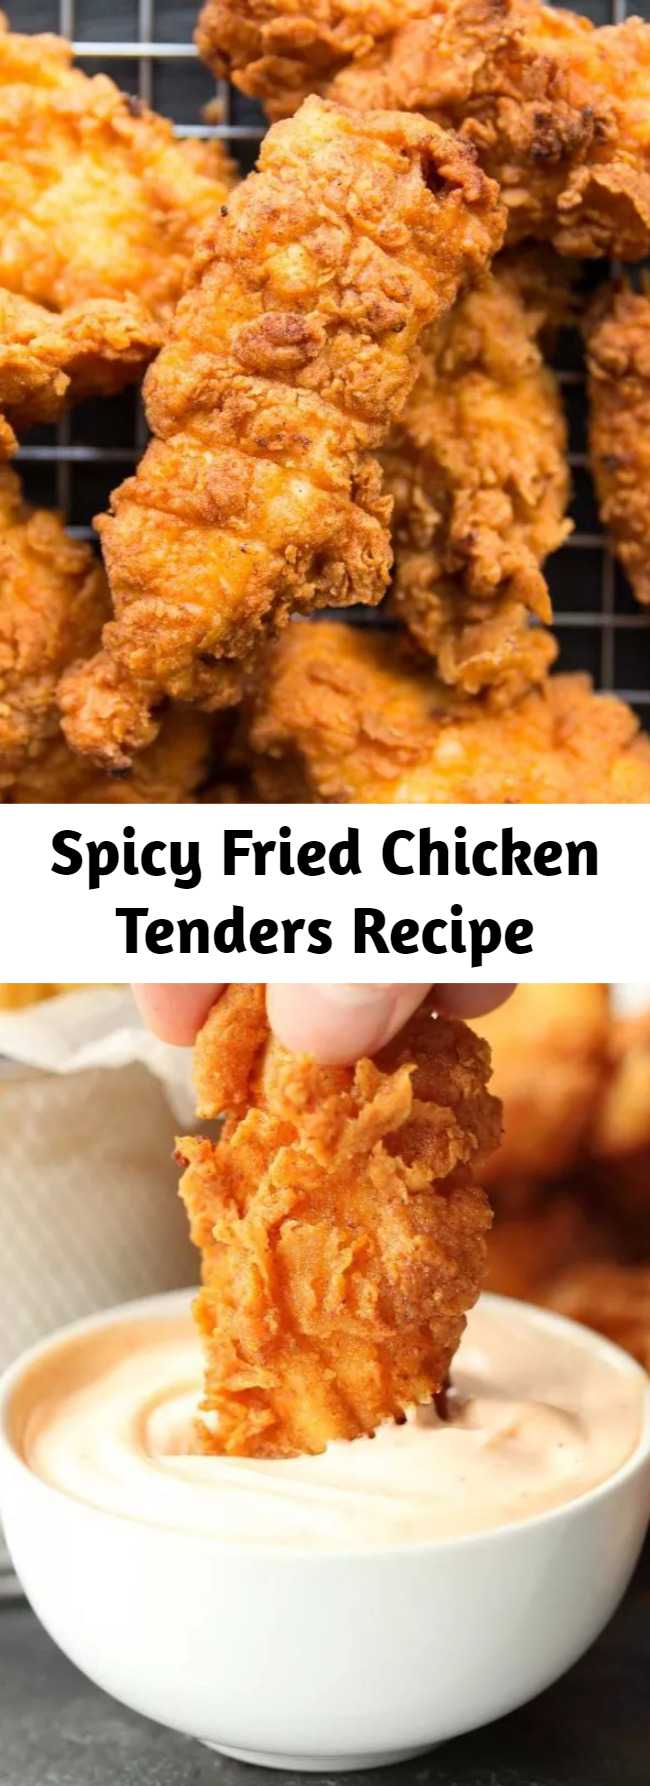 Spicy Fried Chicken Tenders Recipe - These Spicy Chicken Tenders are ridiculously delicious! Chicken strips marinated in buttermilk and hot sauce, then deep fried for extra crispiness. Need I say more?! #chicken #chickentenders #chickenstrips #spicychicken #friedchicken